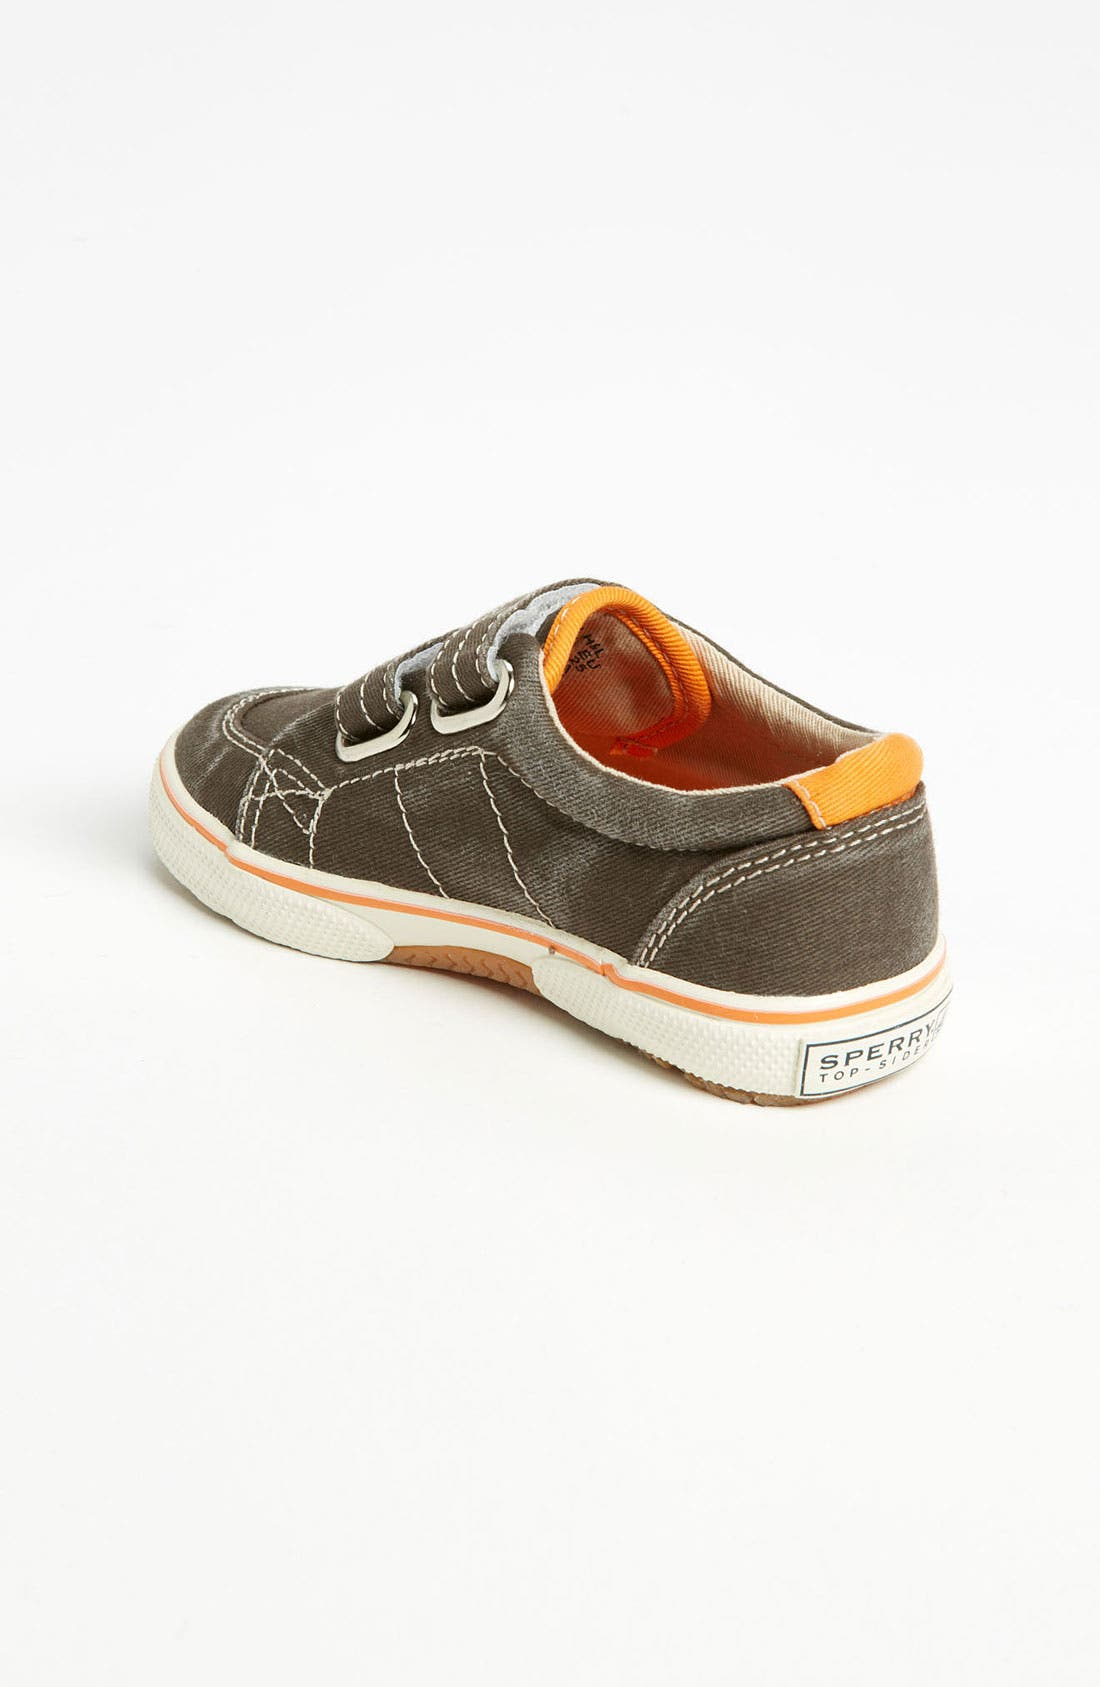 Sperry Top-Sider<sup>®</sup> Kids 'Halyard' Sneaker,                             Alternate thumbnail 13, color,